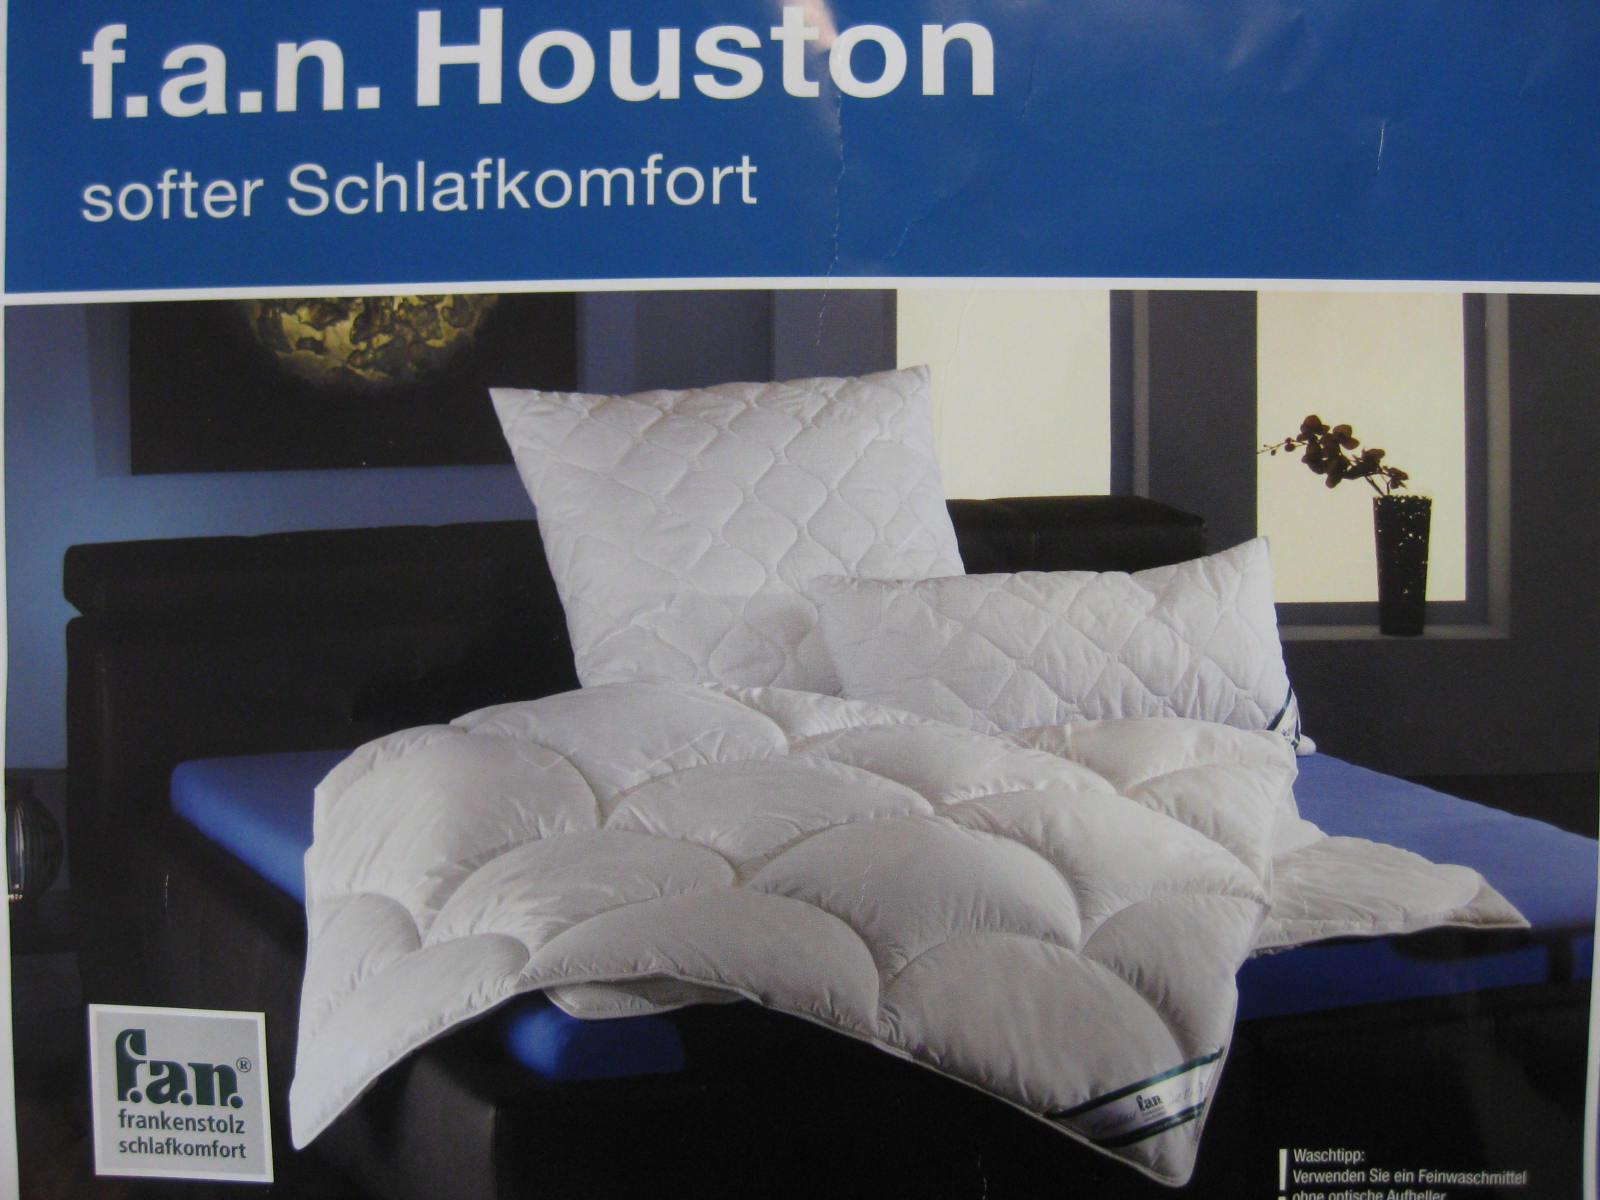 Bettdecken Frankenstolz Steppbett Houston Duo Bettdecke 135 200 Cm Von F A N